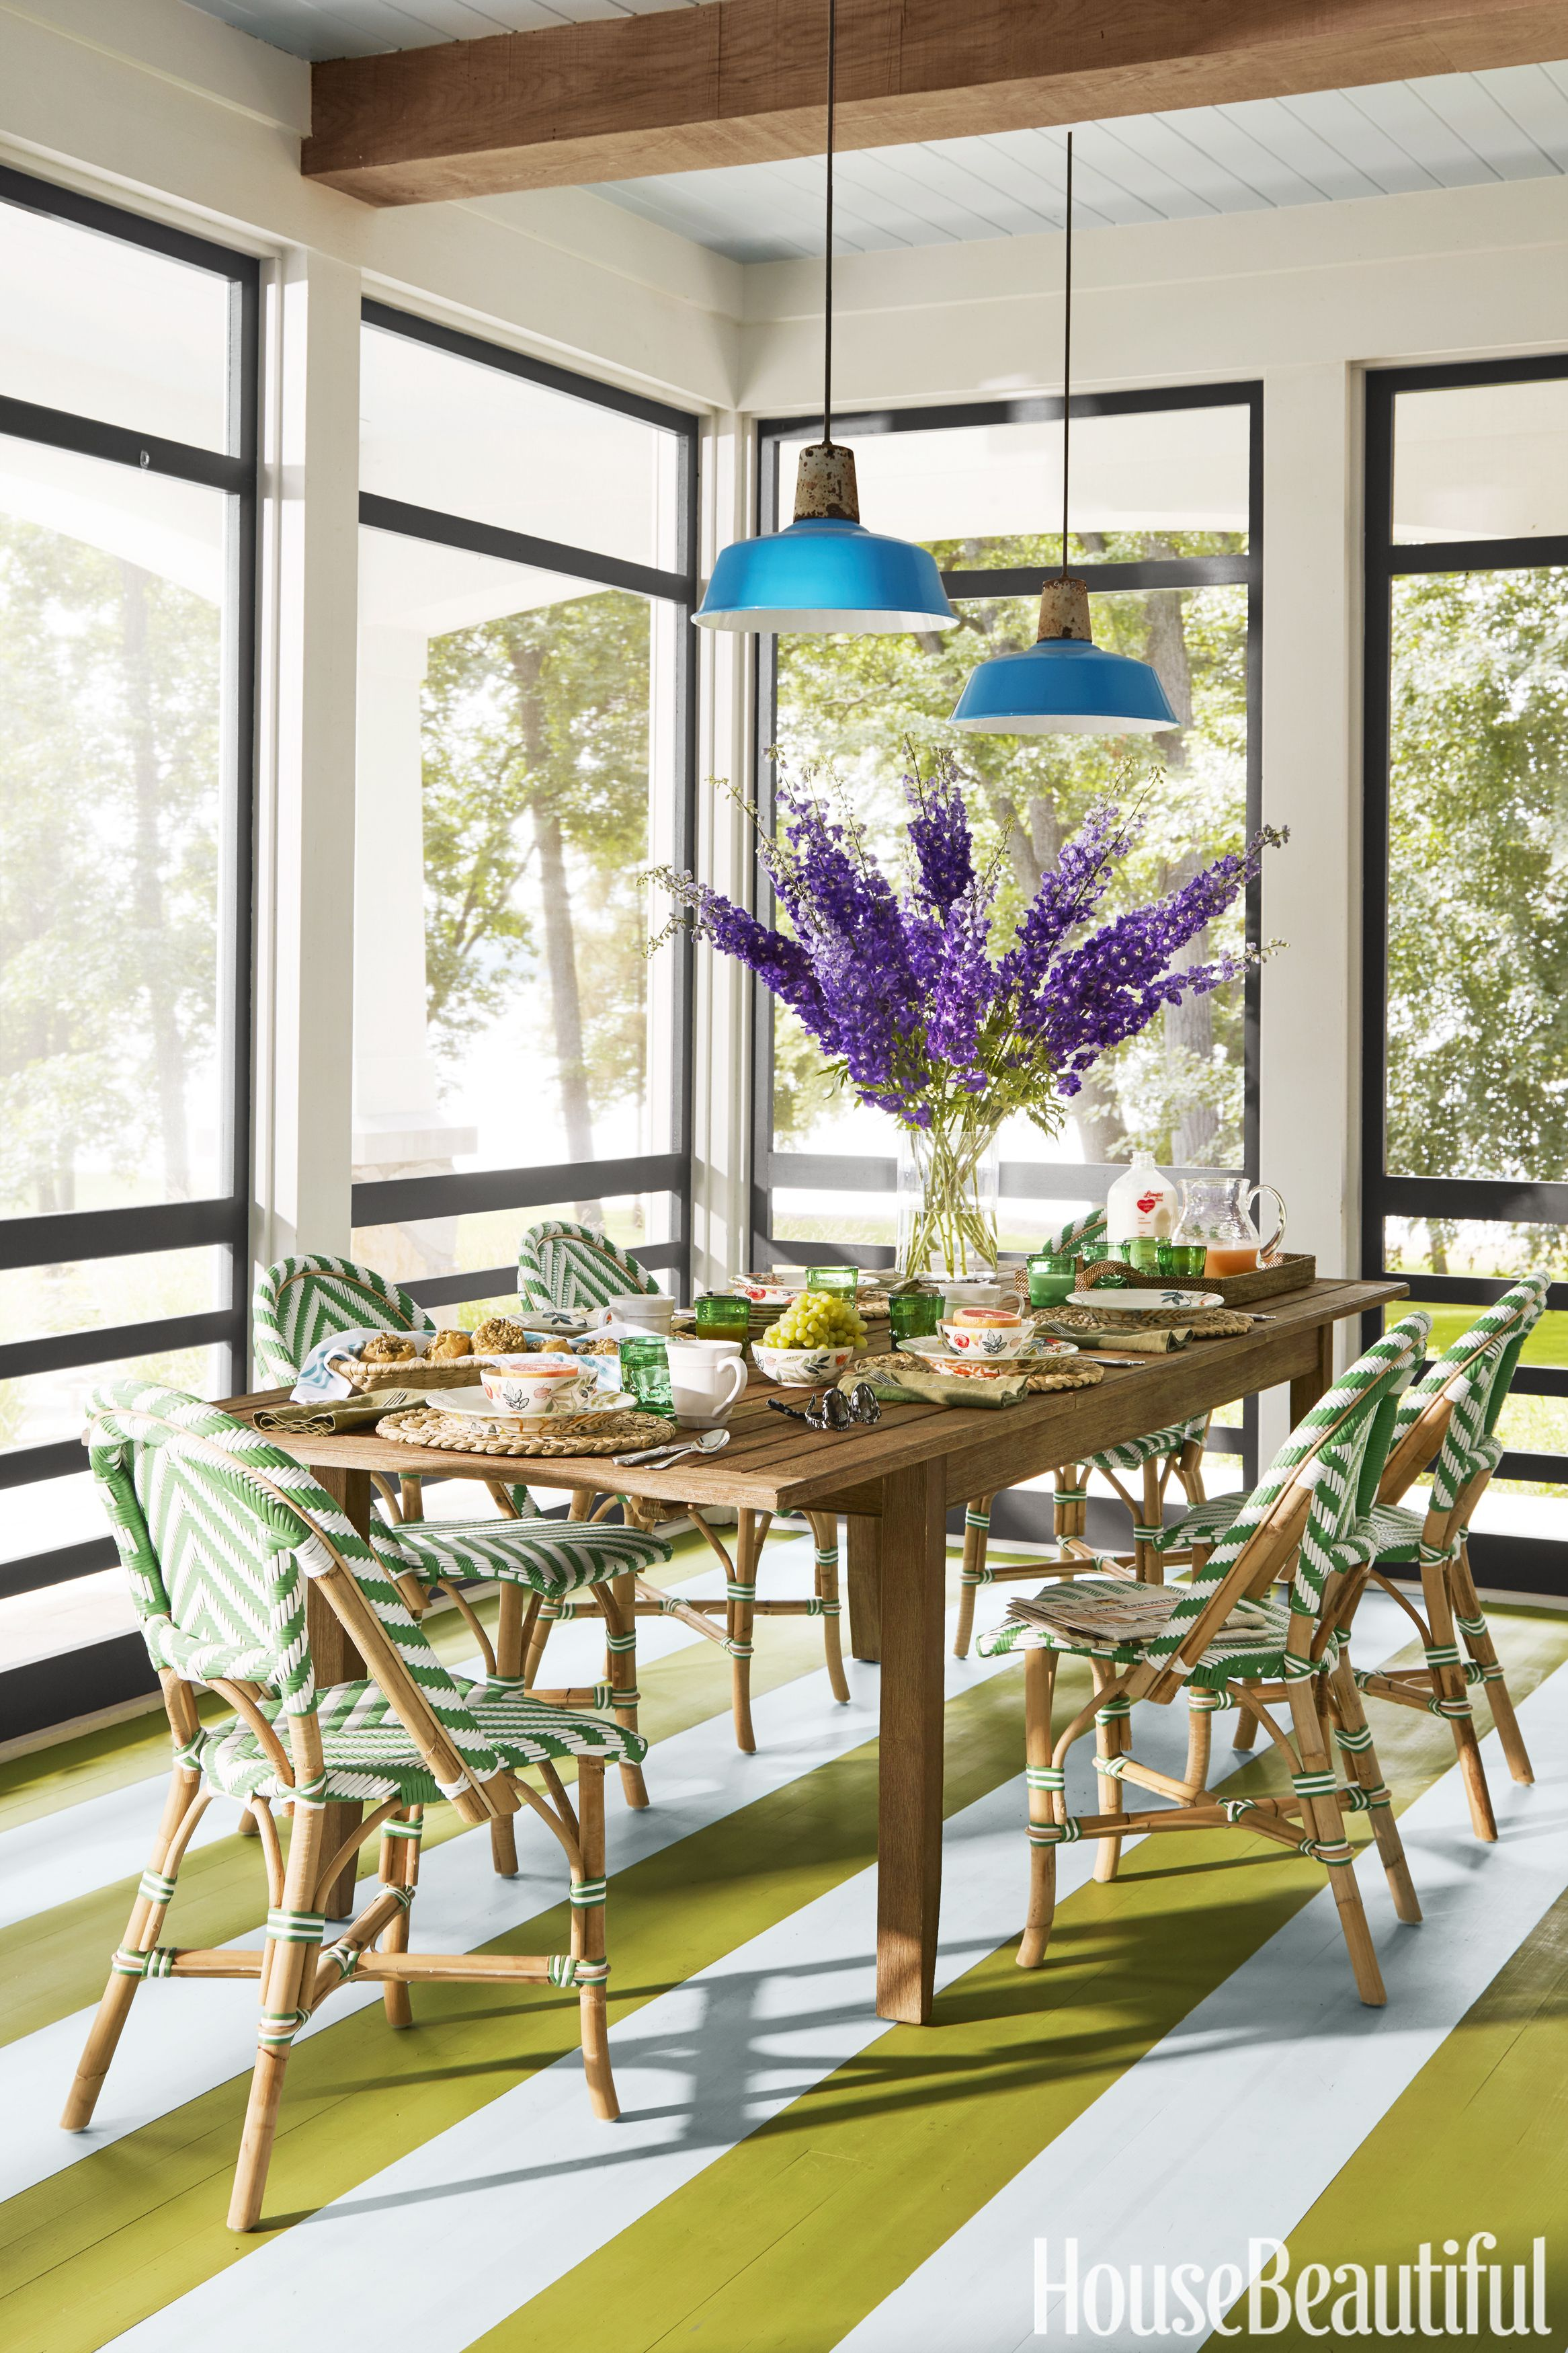 Pay.housebeautiful.com Glamorous Wisconsin Lake House  Summer Thornton Designs A Colorful Vacation Inspiration